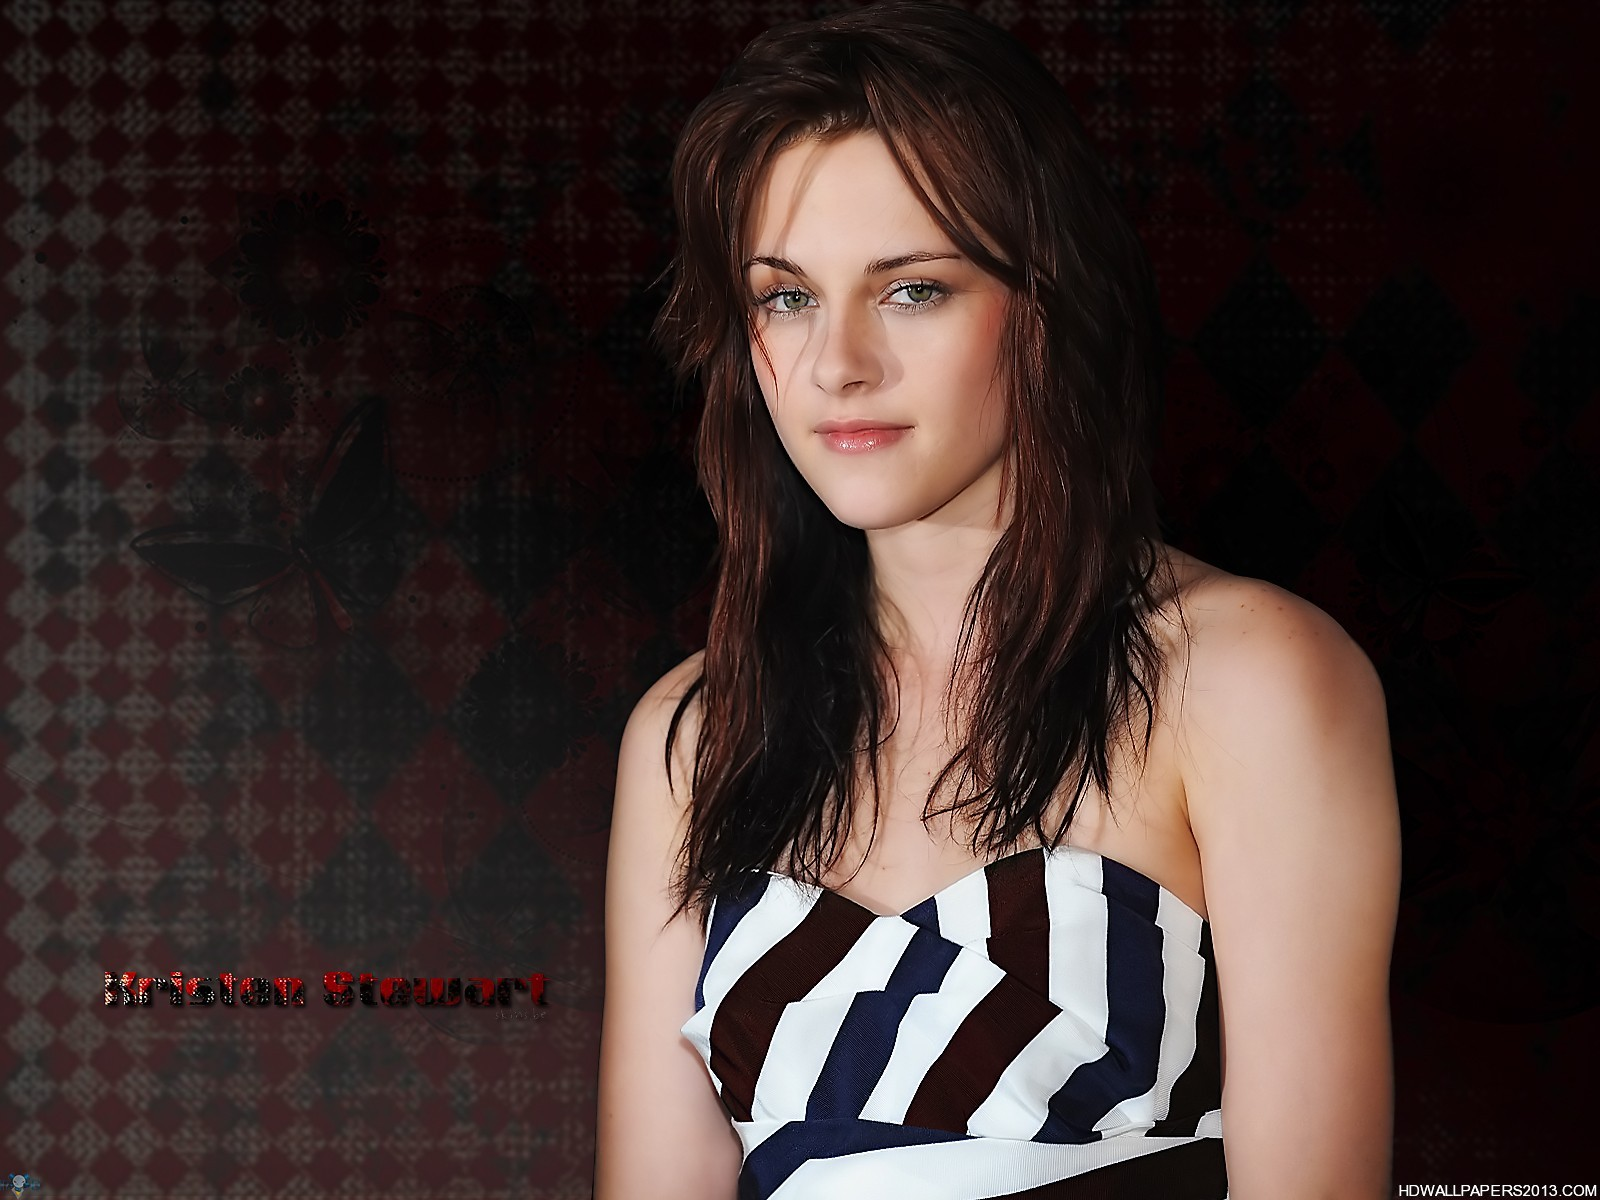 kristen stewart wallpaper hd hd wallpapers kristen stewart wallpaper